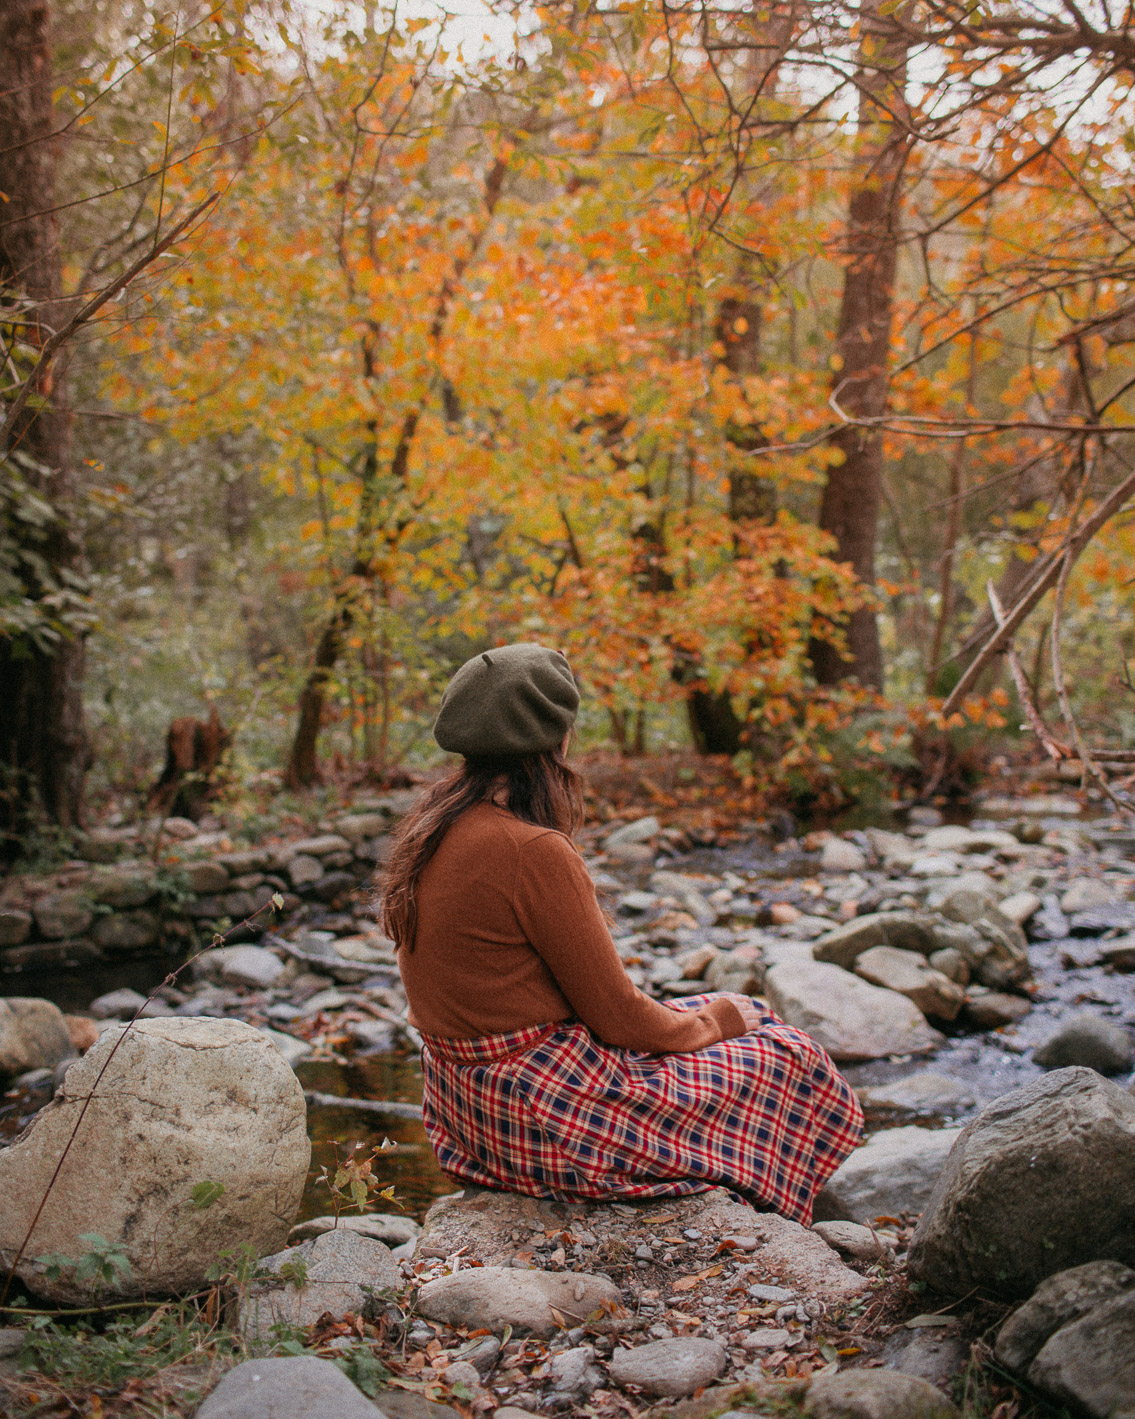 Montseny fall colors (otoño, tardor) - The cat, you and us